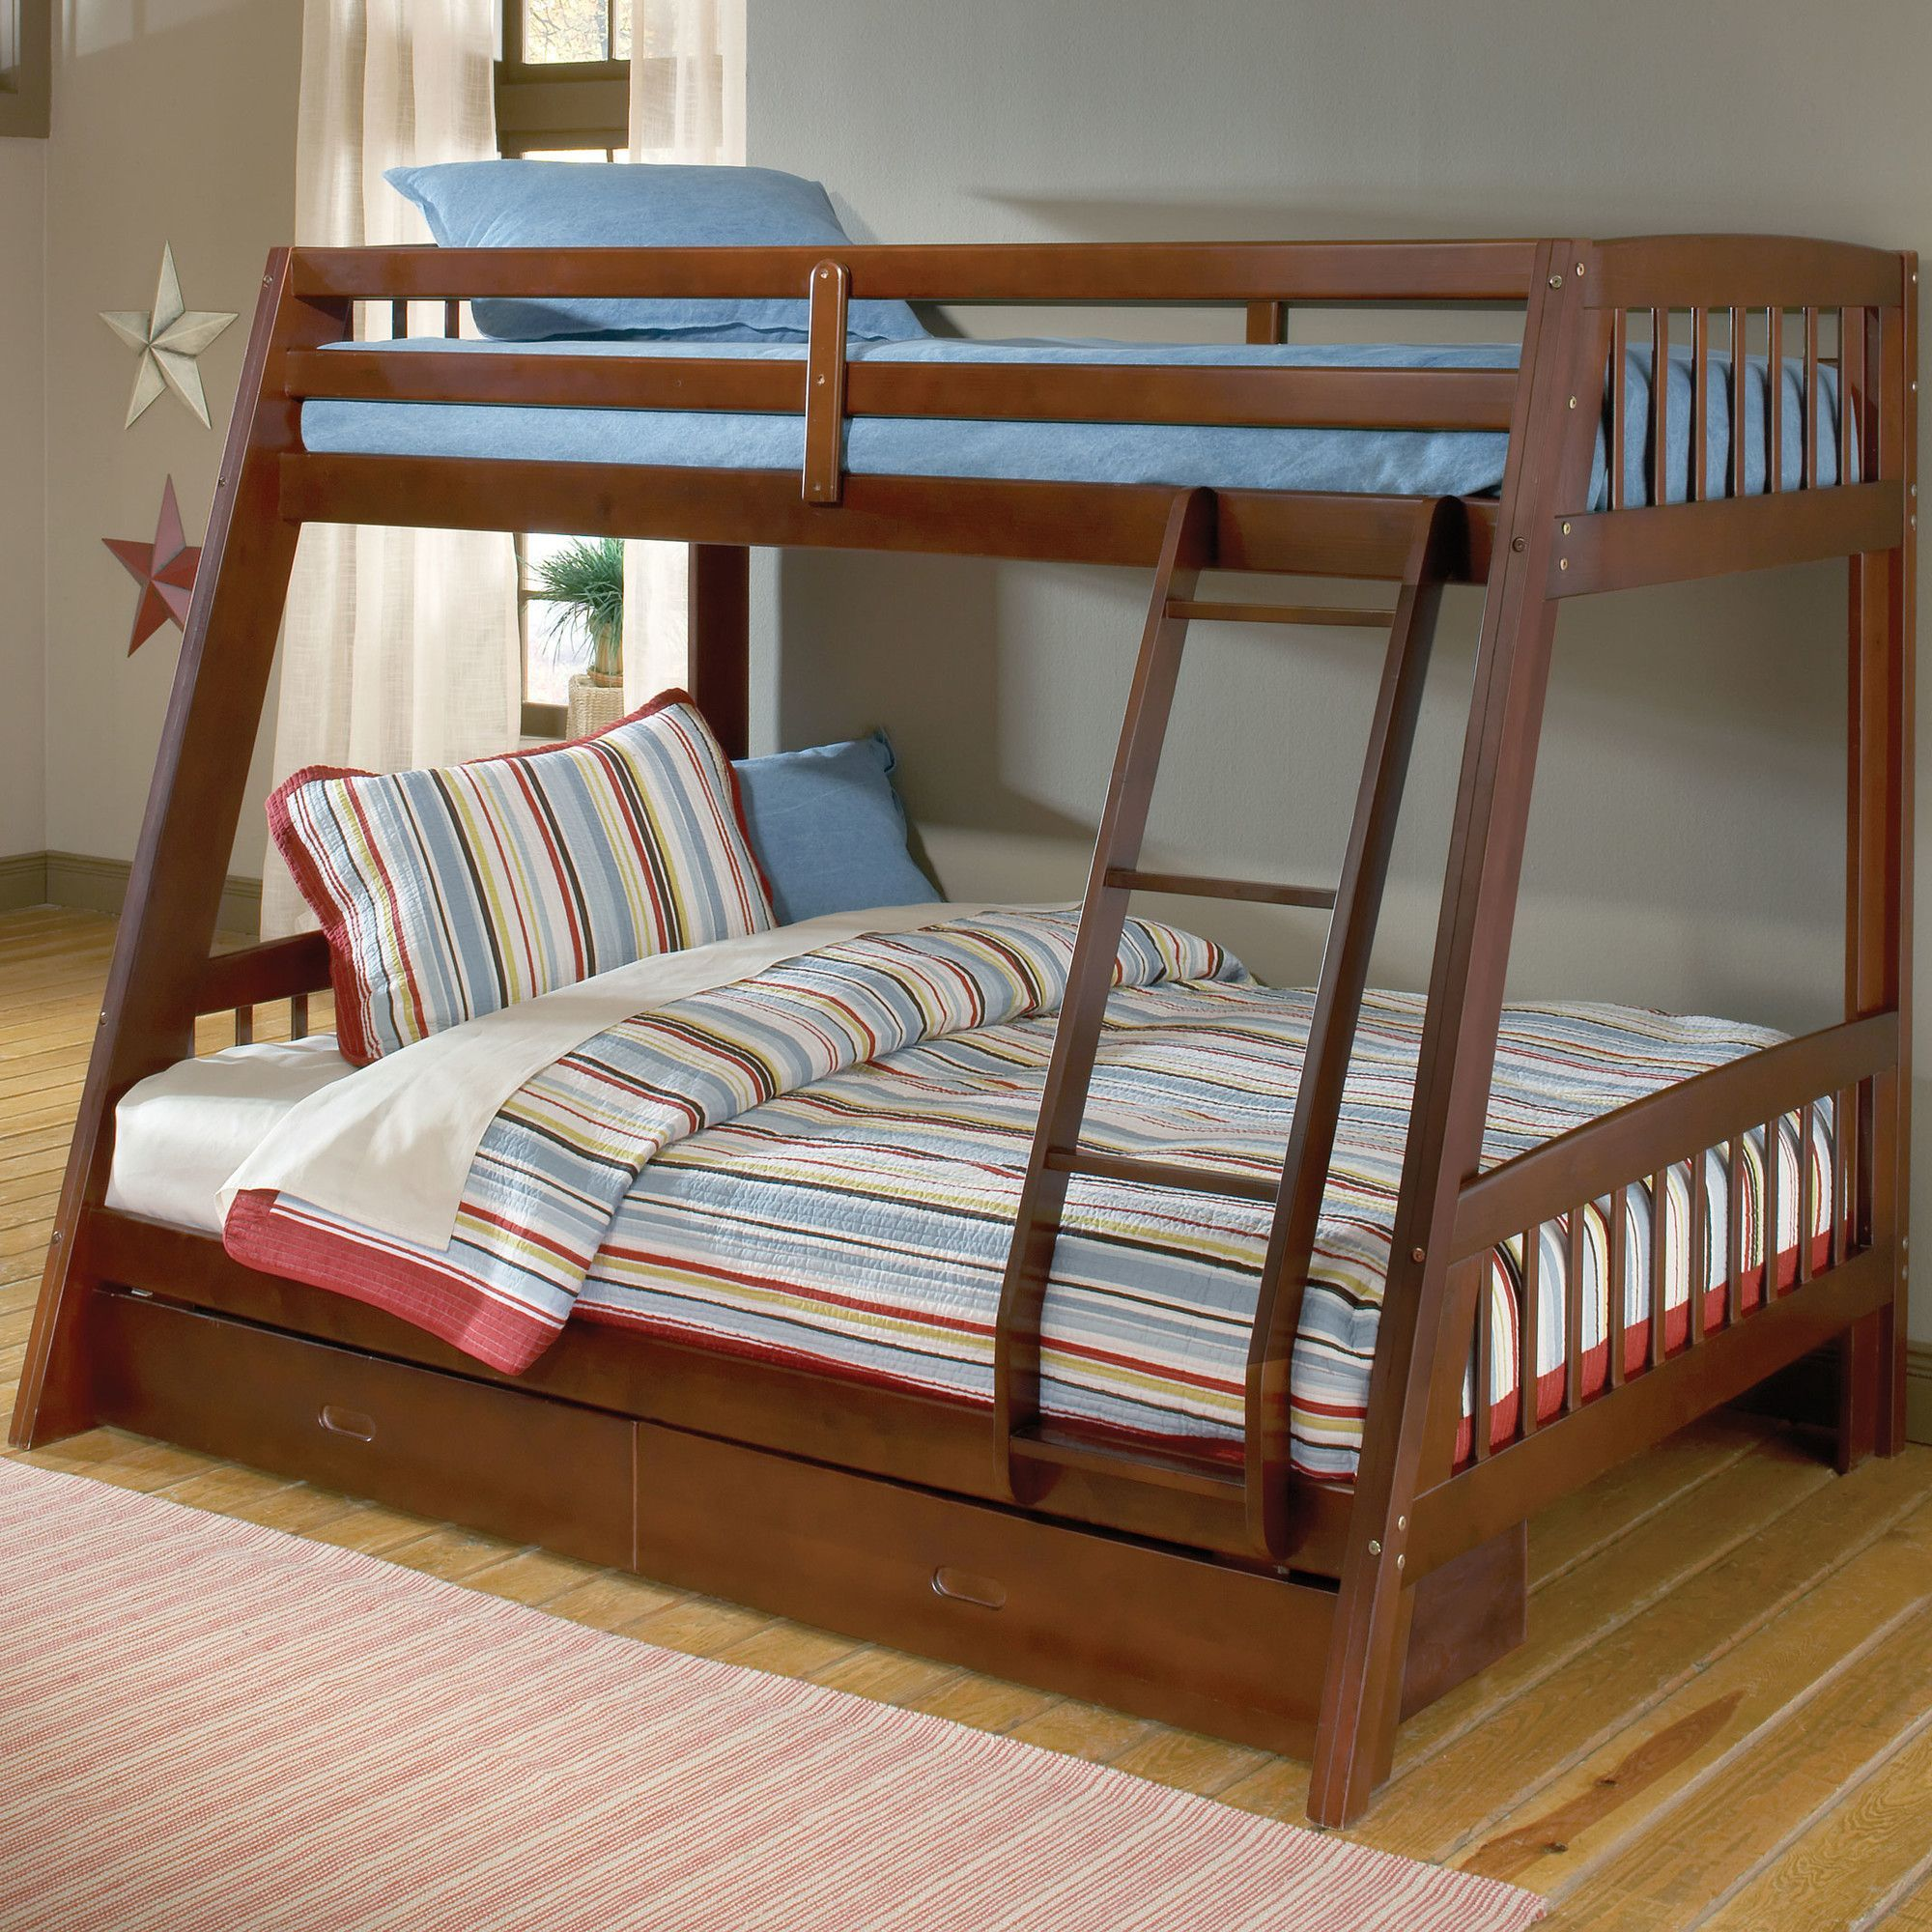 Built in loft bed ideas  Rockdale Twin over Full Bunk Bed with BuiltIn Ladder and Storage